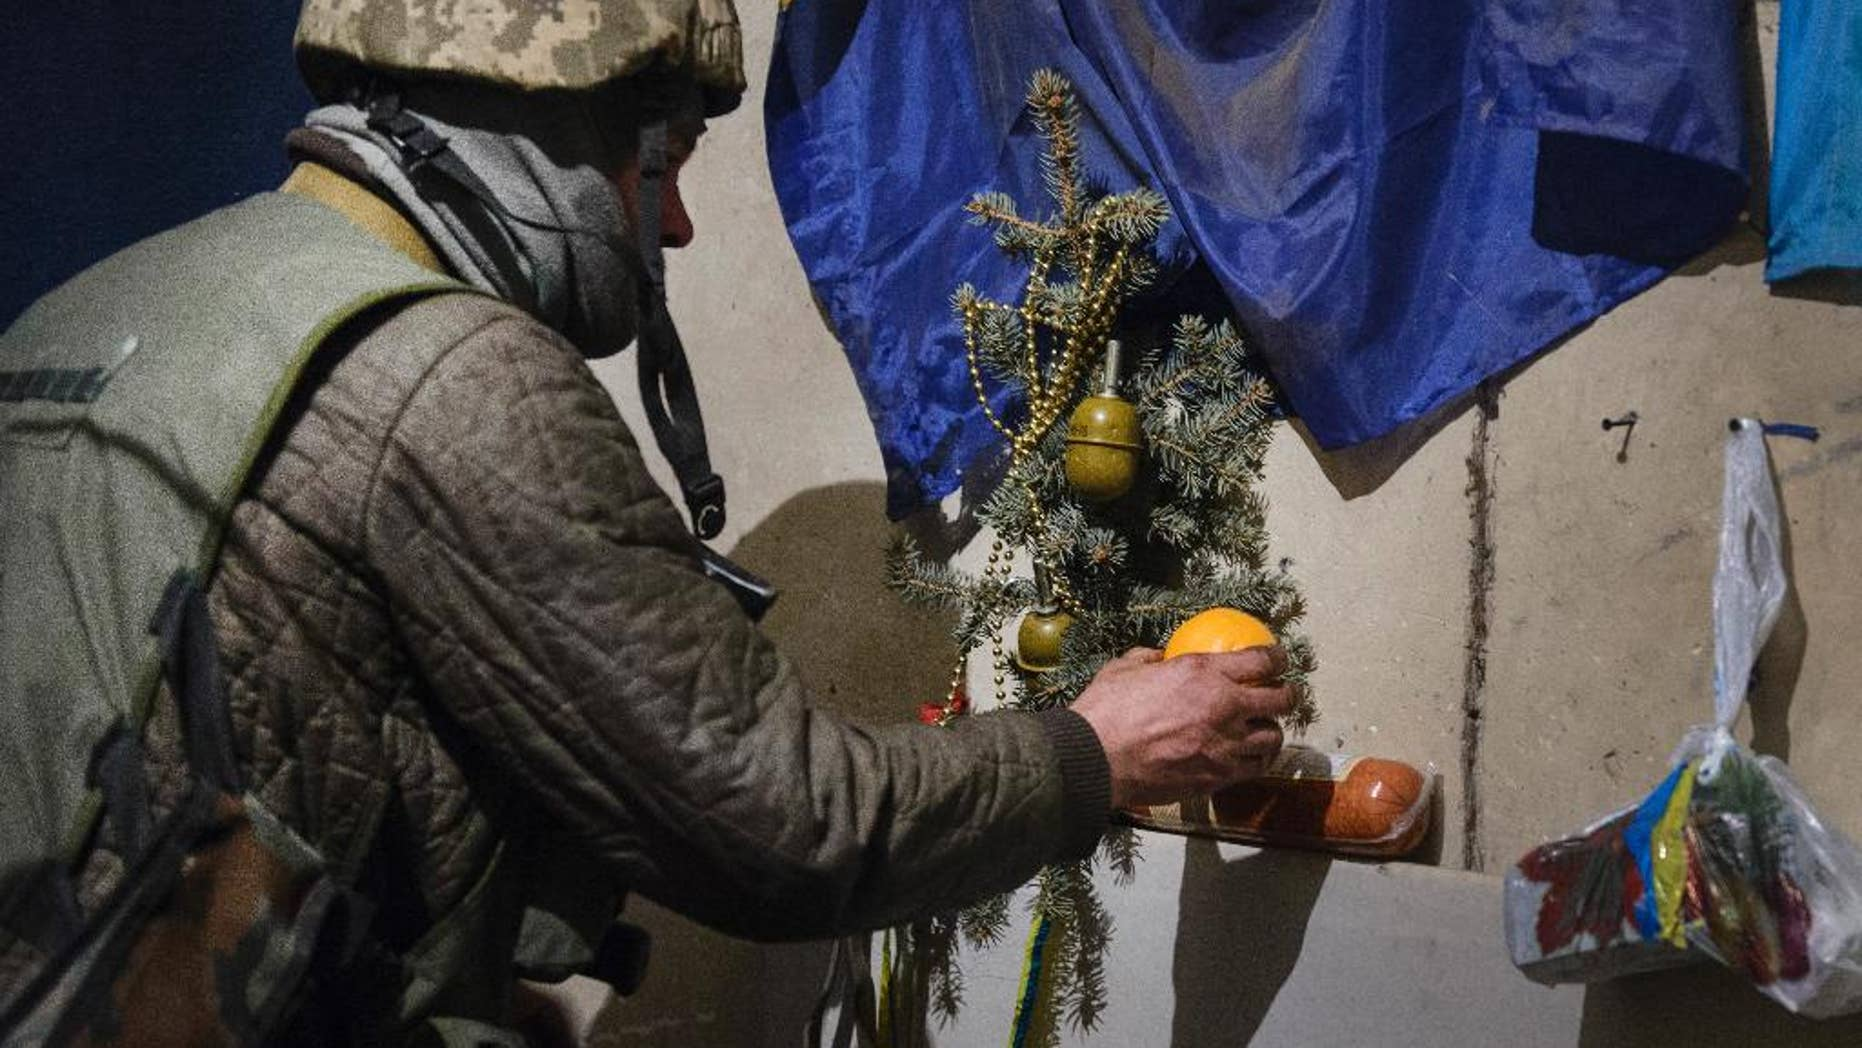 A Ukrainian soldier decorates a Christmas tree with grenades, a few hours before the New Year, in a shelter in the village of Peski near Donetsk, eastern Ukraine, Wednesday, Dec.31, 2014. (AP Photo/Olga Ivashchenko)